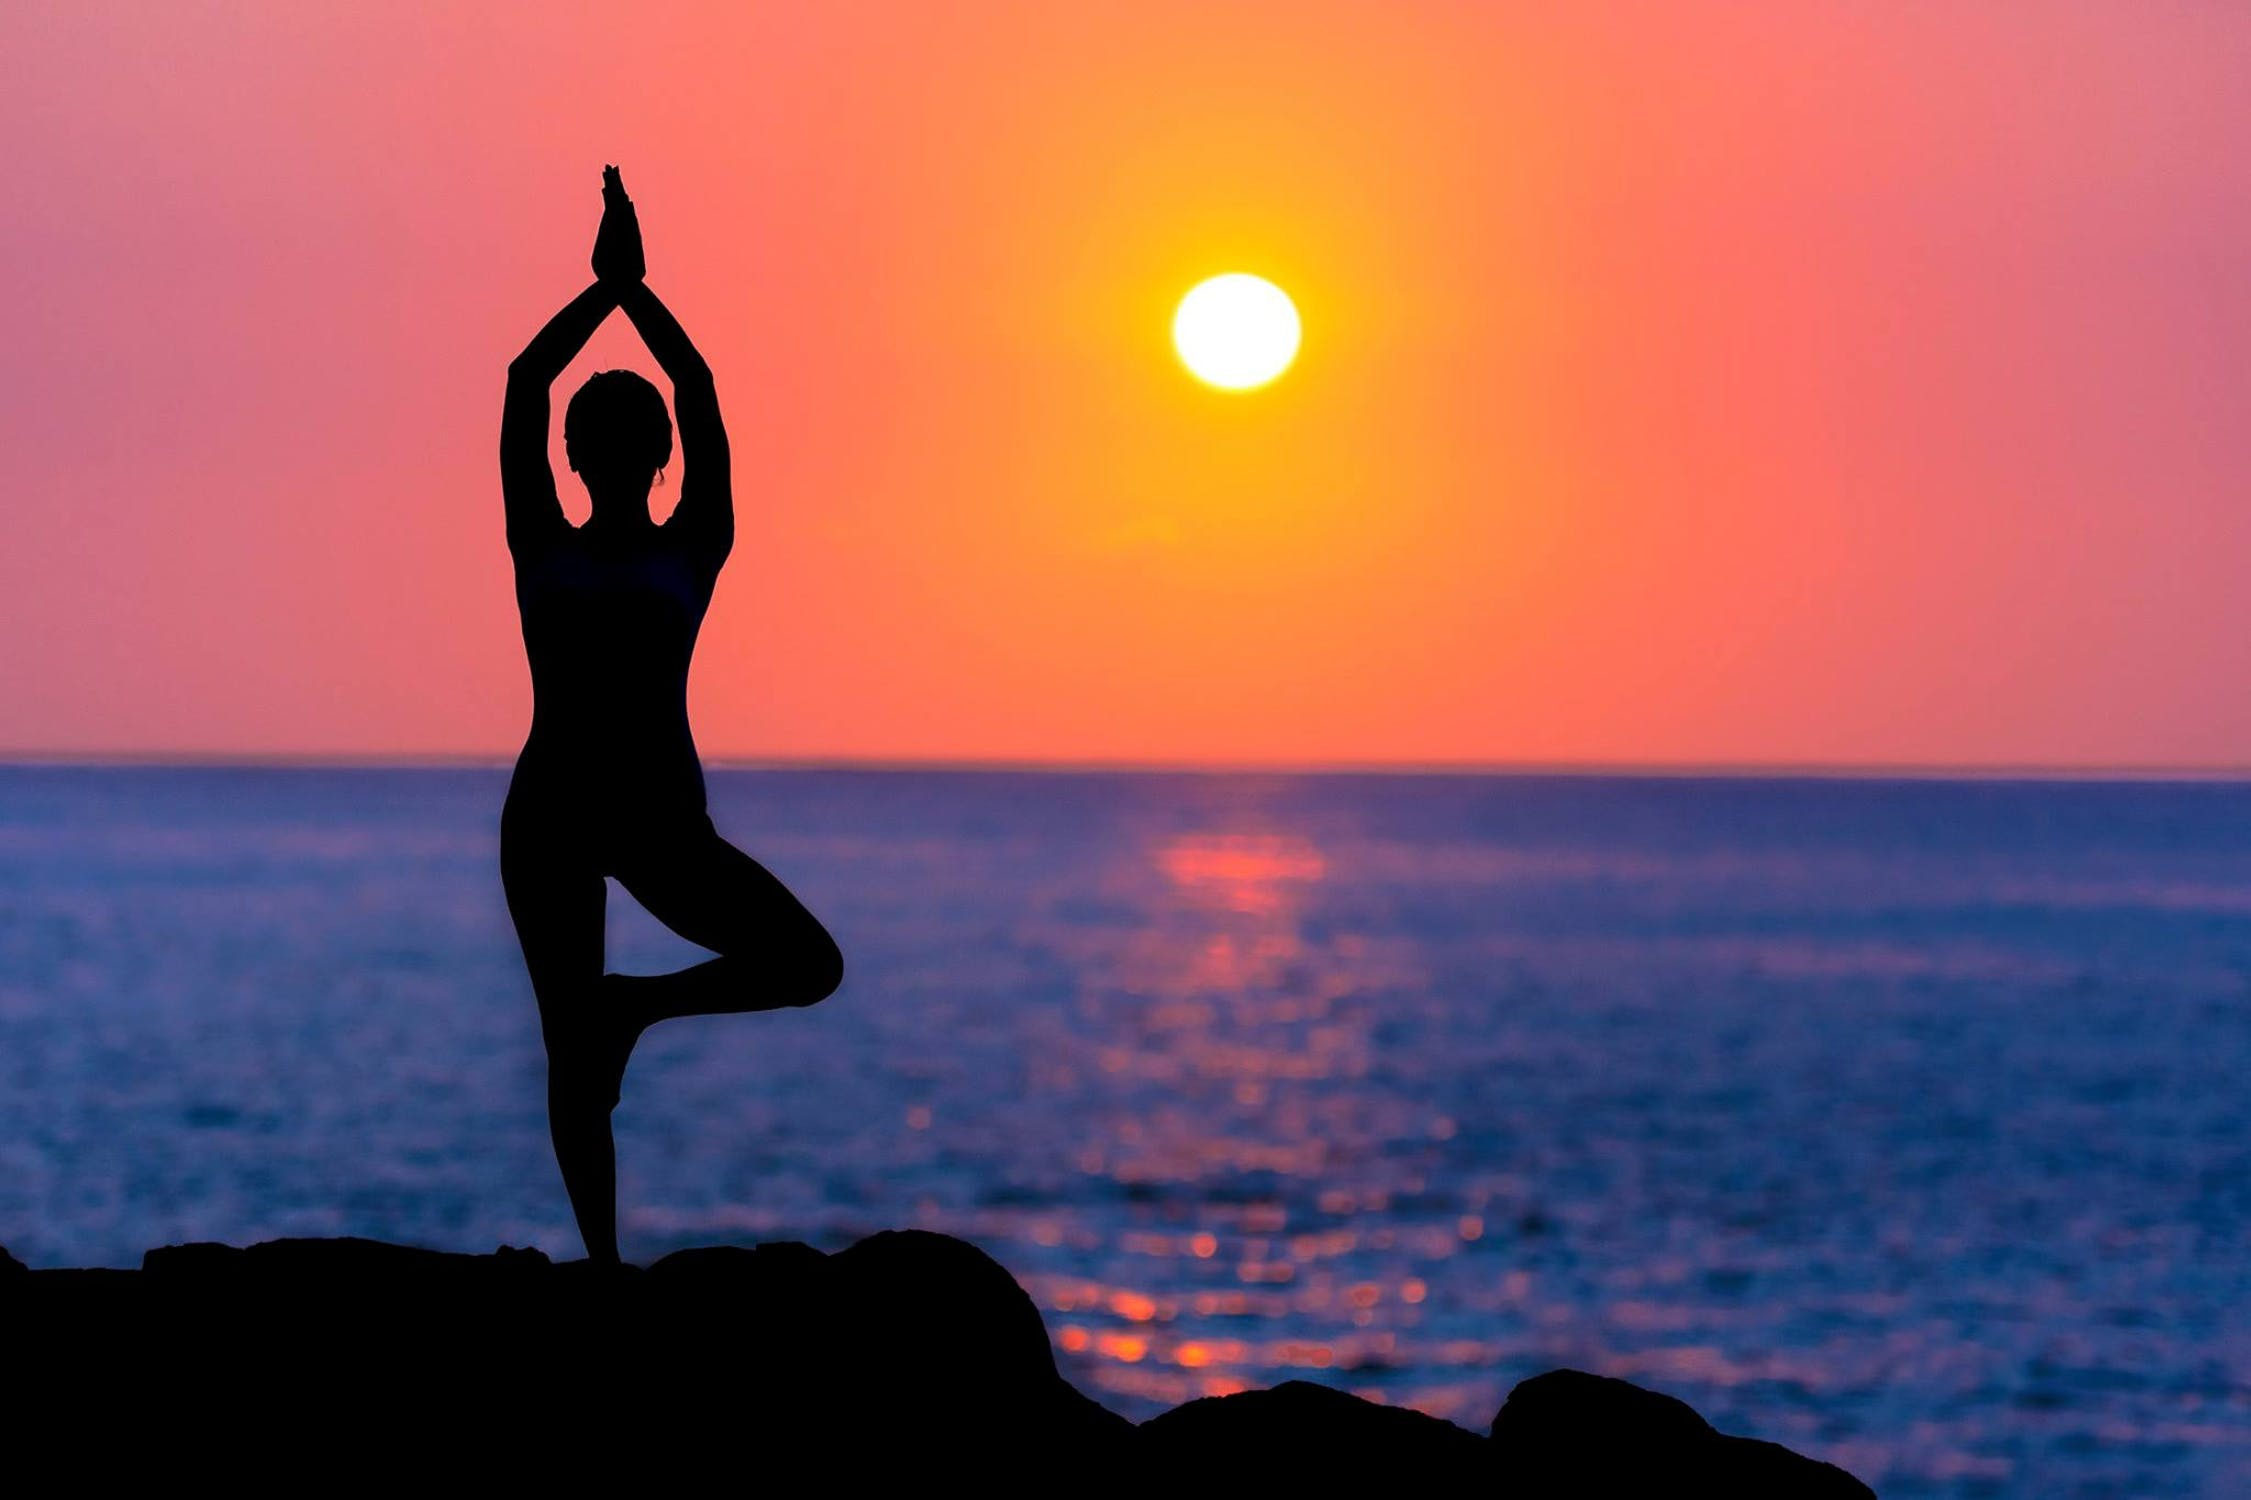 A photo of a CBD user practicing yoga by herself on a serene beach at sunset.